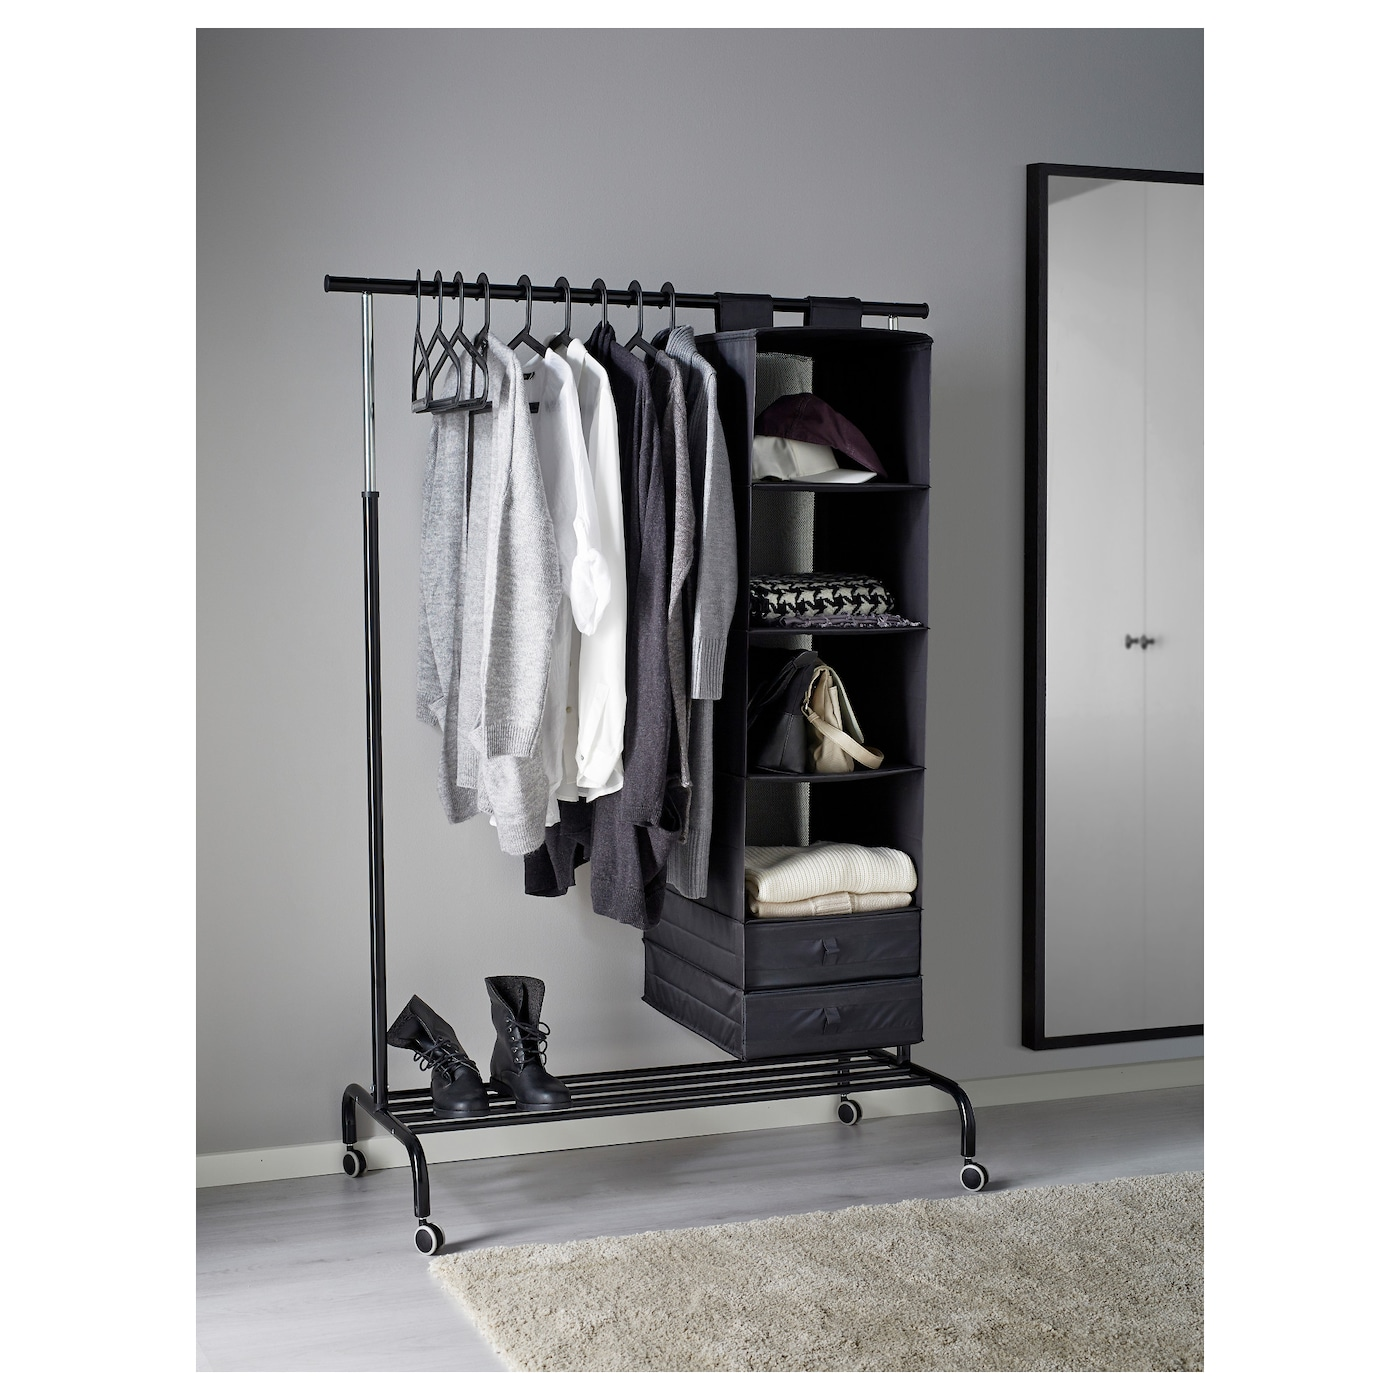 Rigga clothes rack black ikea for Ikea coat rack stand